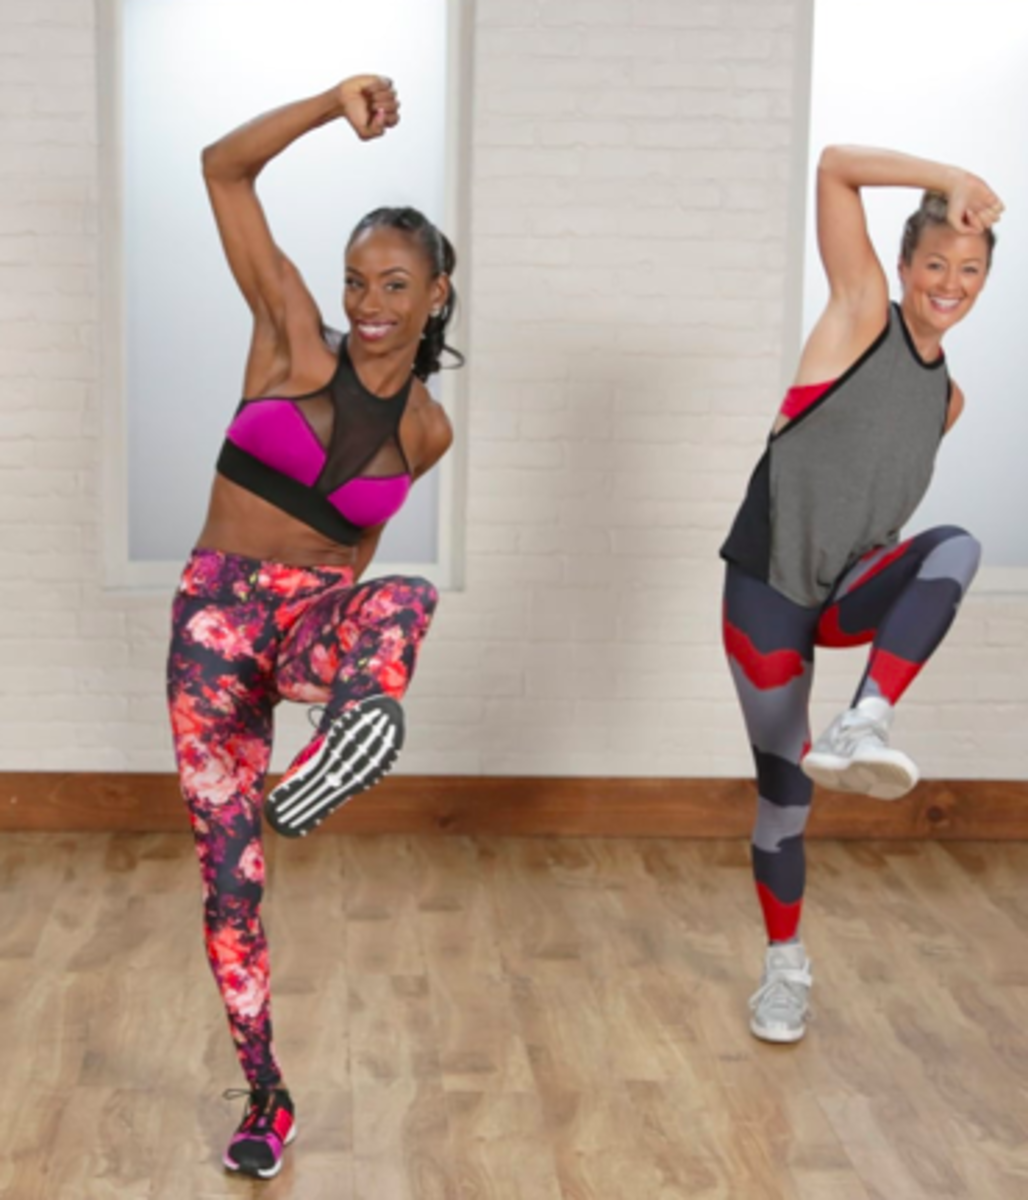 Join a fitness class or use a workout DVD at home to get you moving